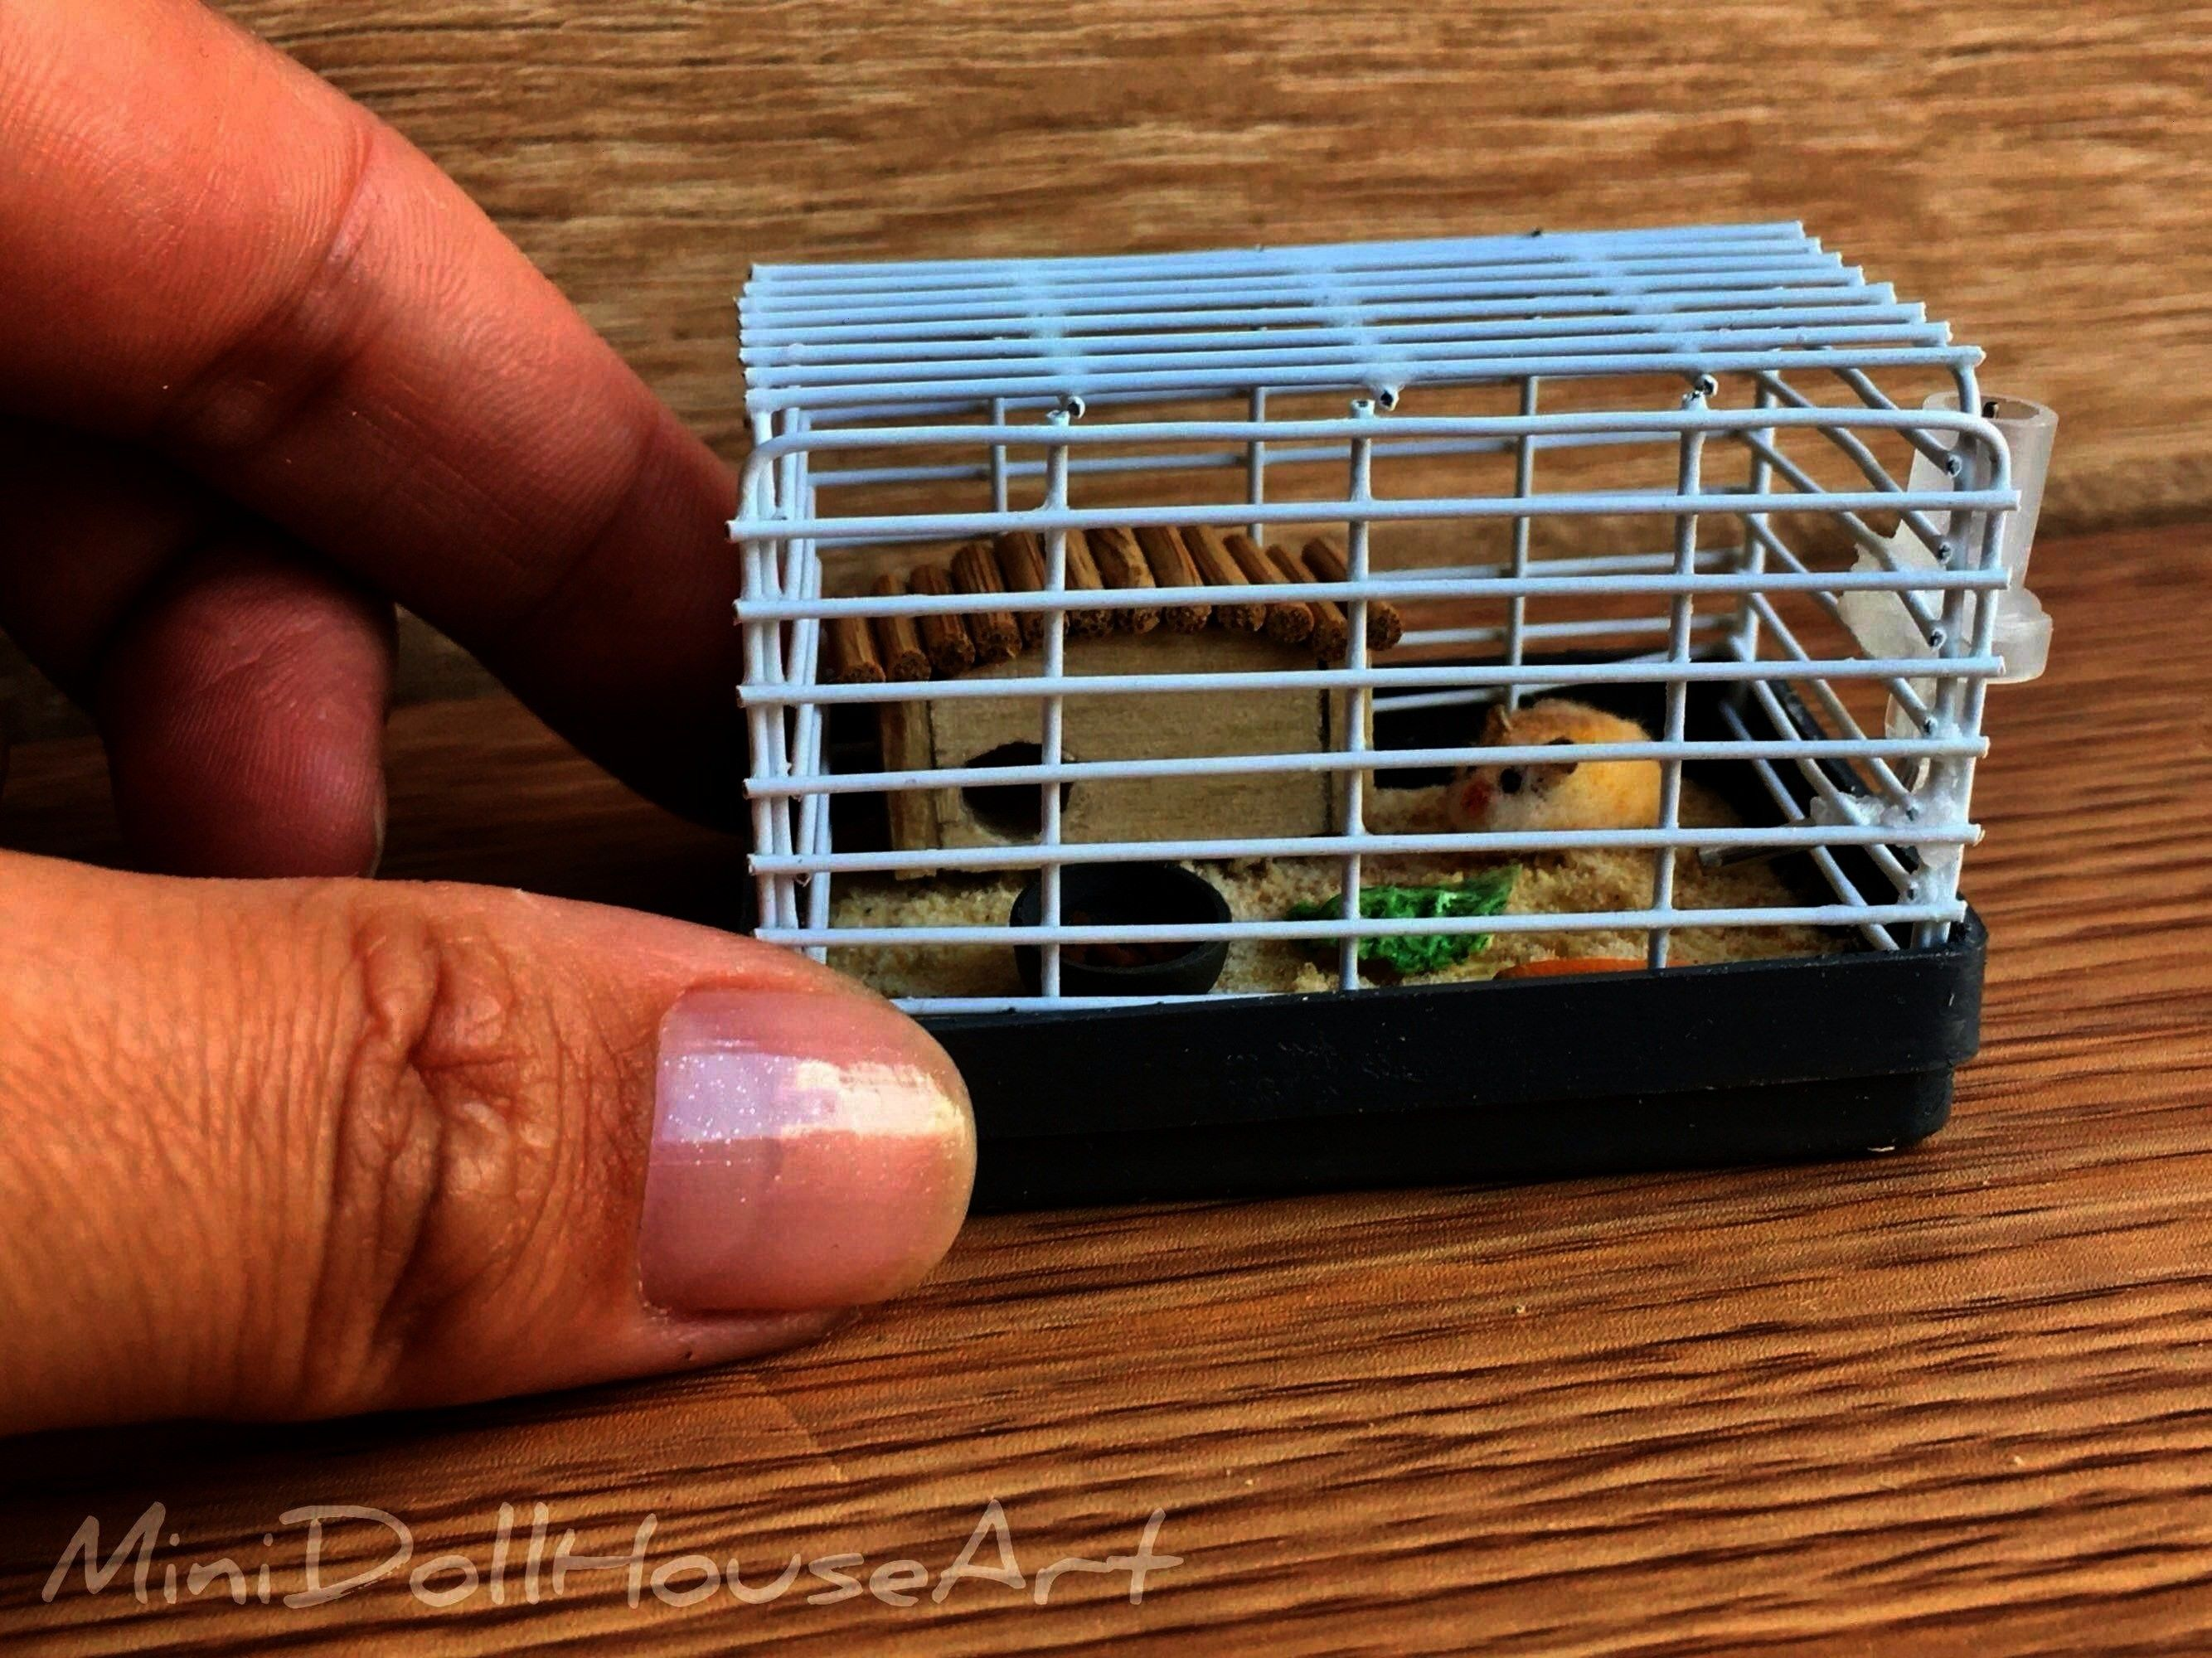 for dolls doll house Handmade  Cage with hamster Miniature for dolls doll house Handmade   Finishing off an entire bowl of ramen has never been easier Or less filling Tat...